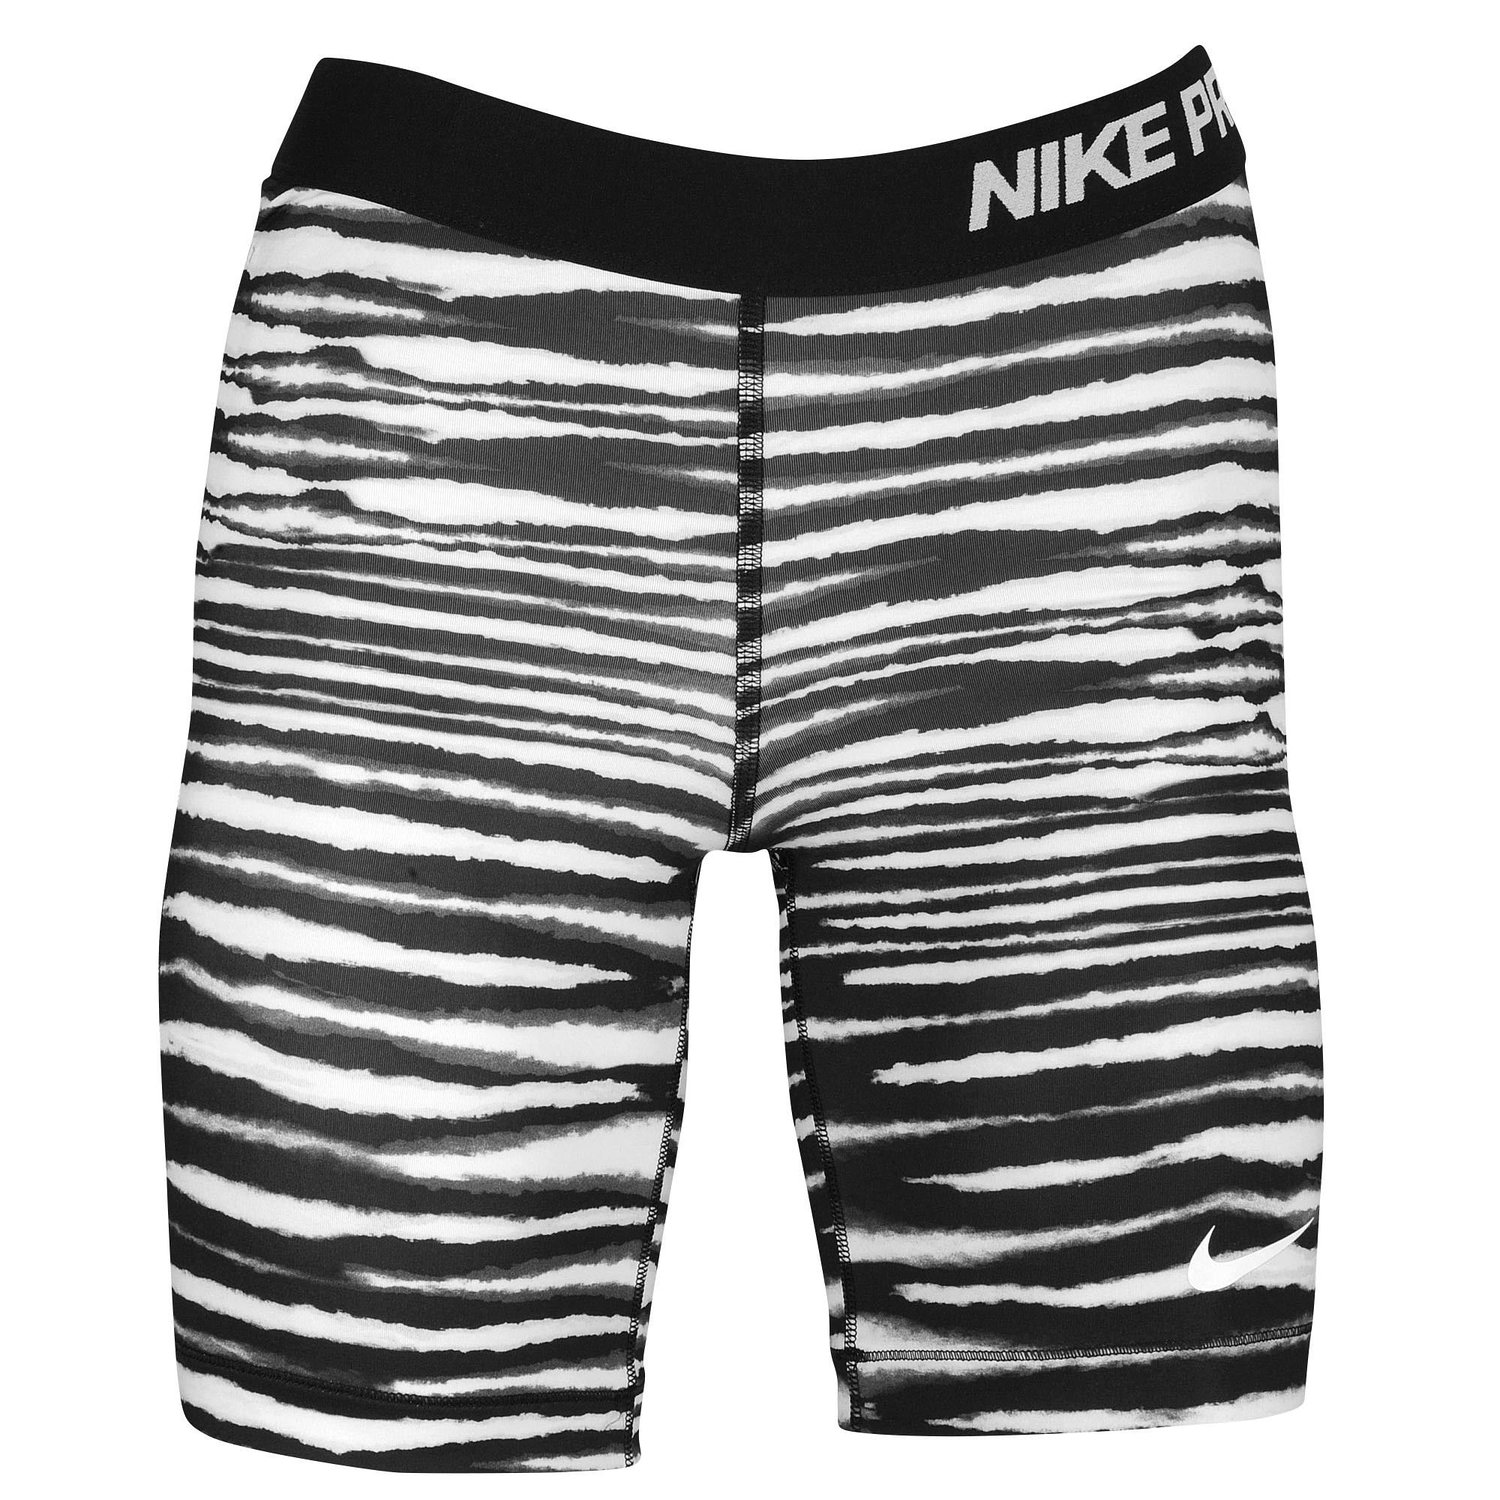 super popular 790ee fbe05 Get Quotations · Nike Pro Womens 7